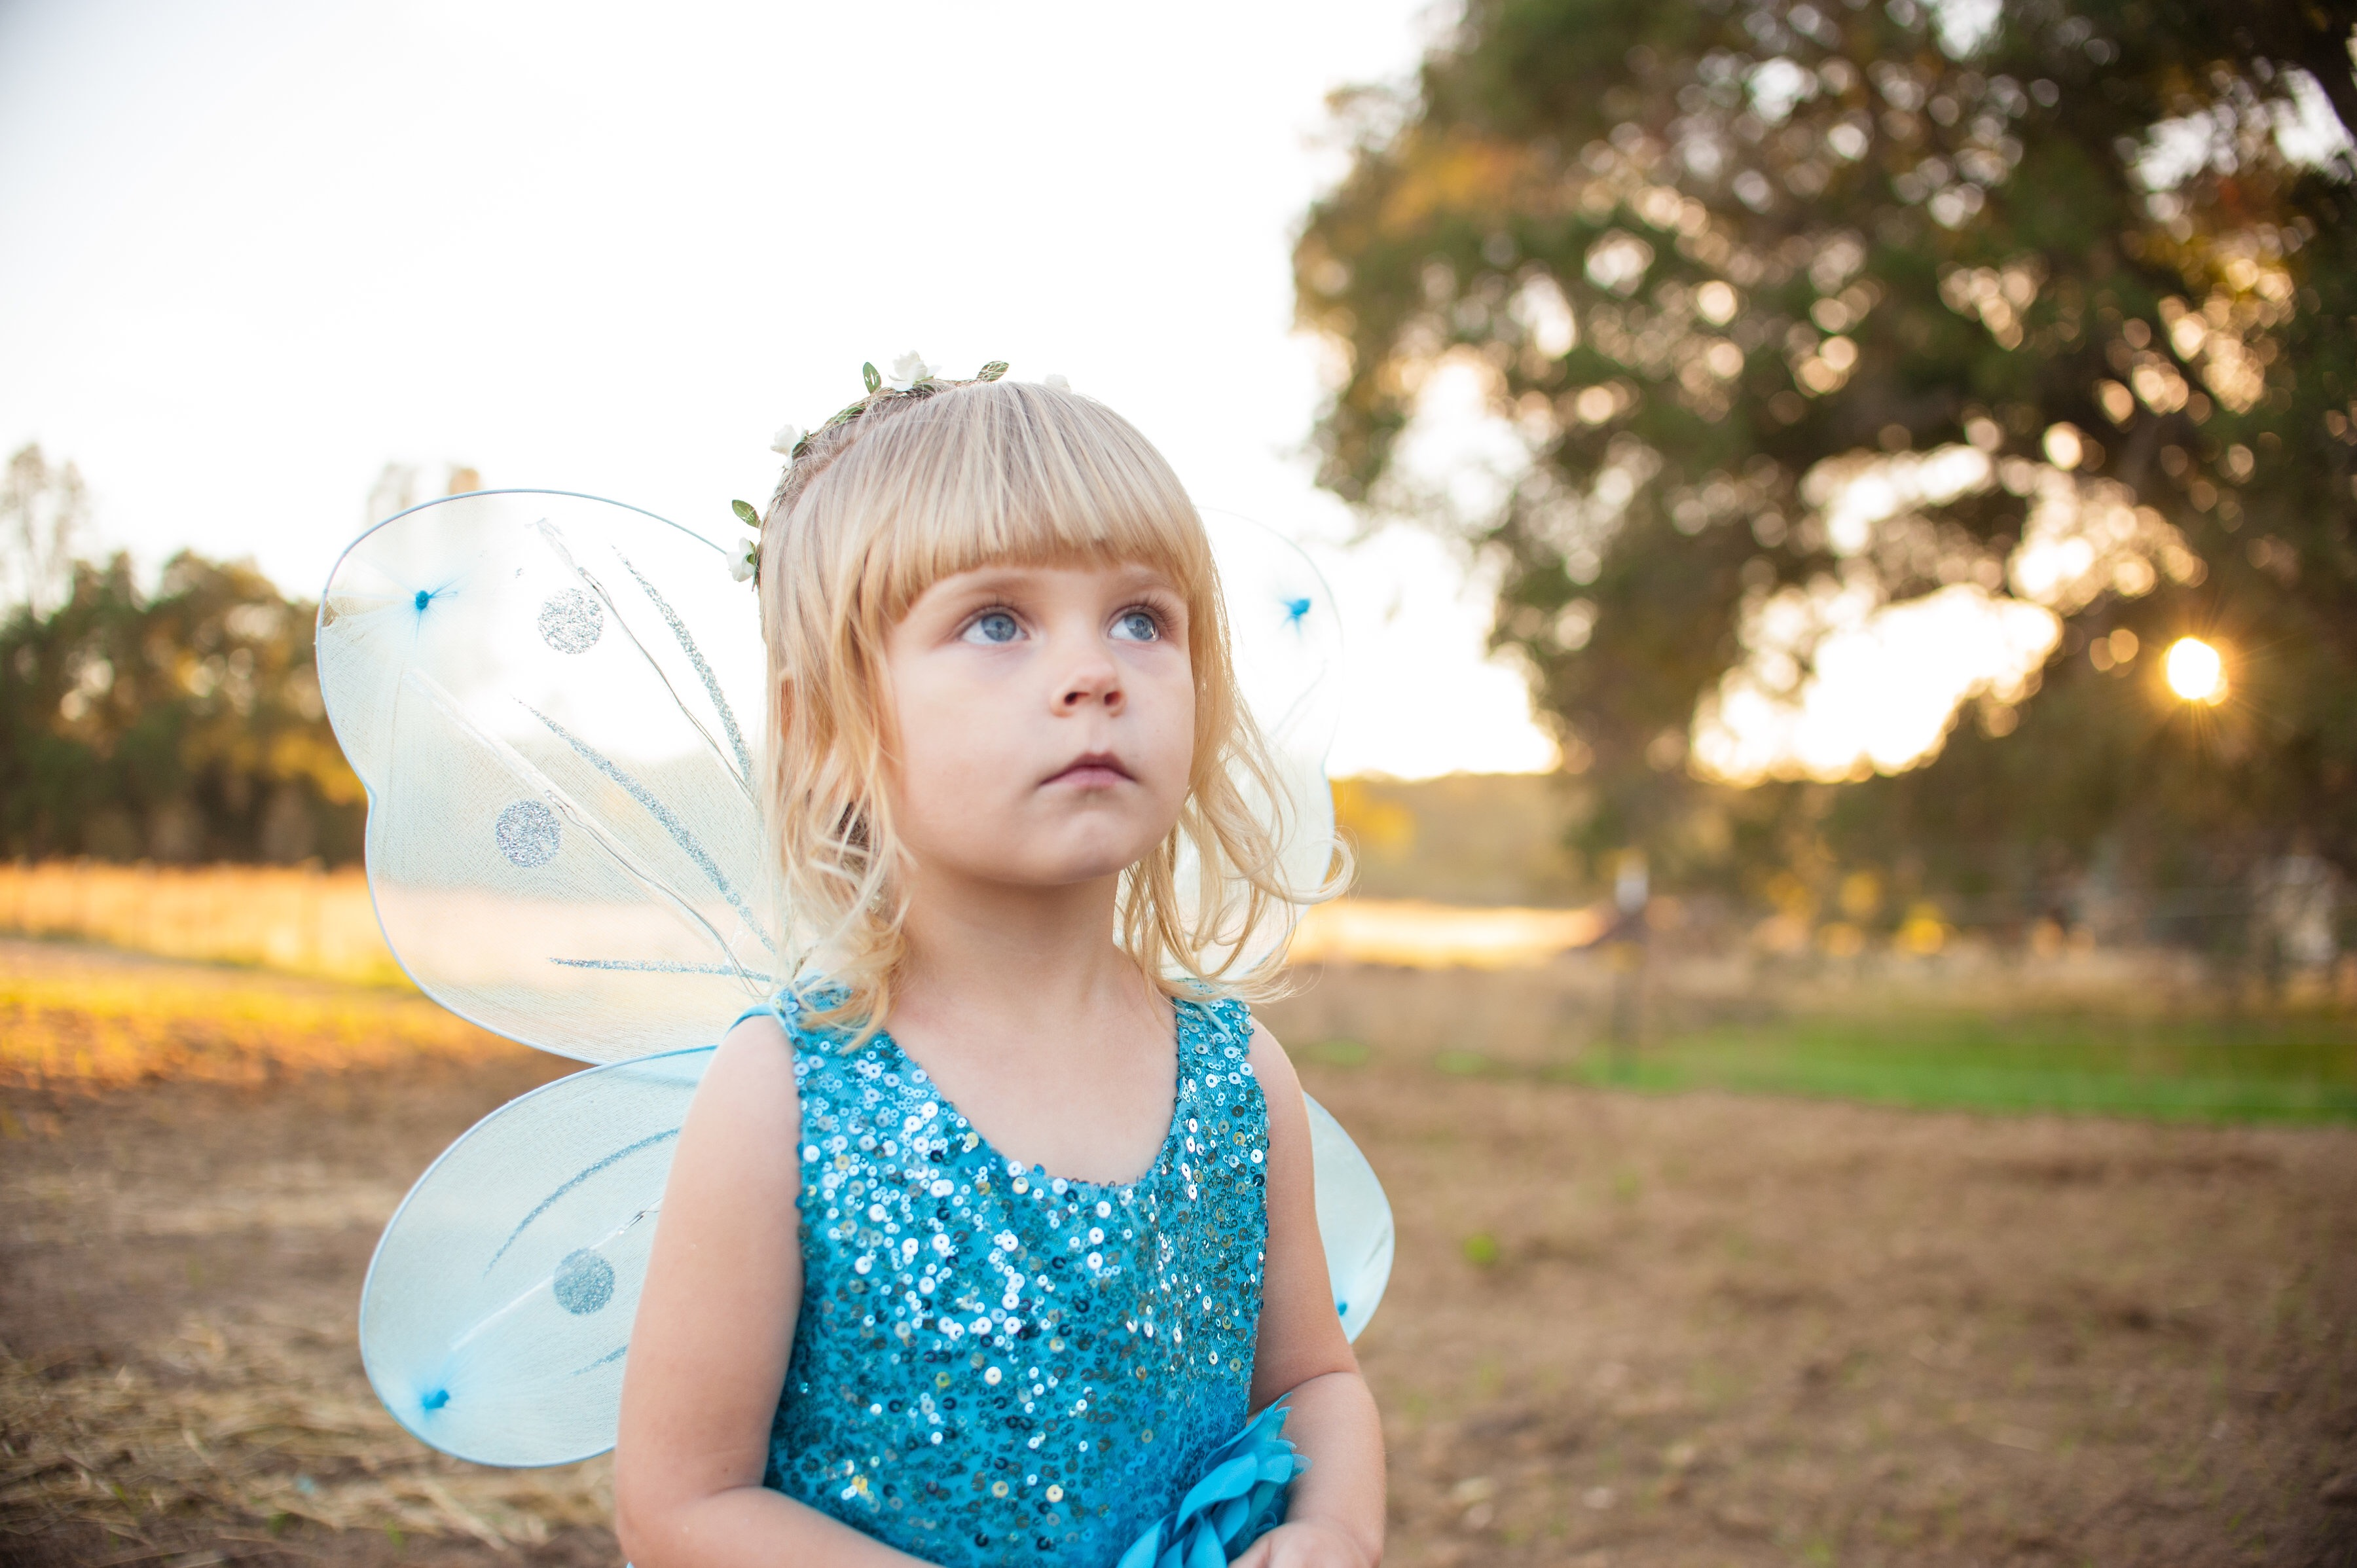 Fairy princess with translucent blue wings looks up at the sky